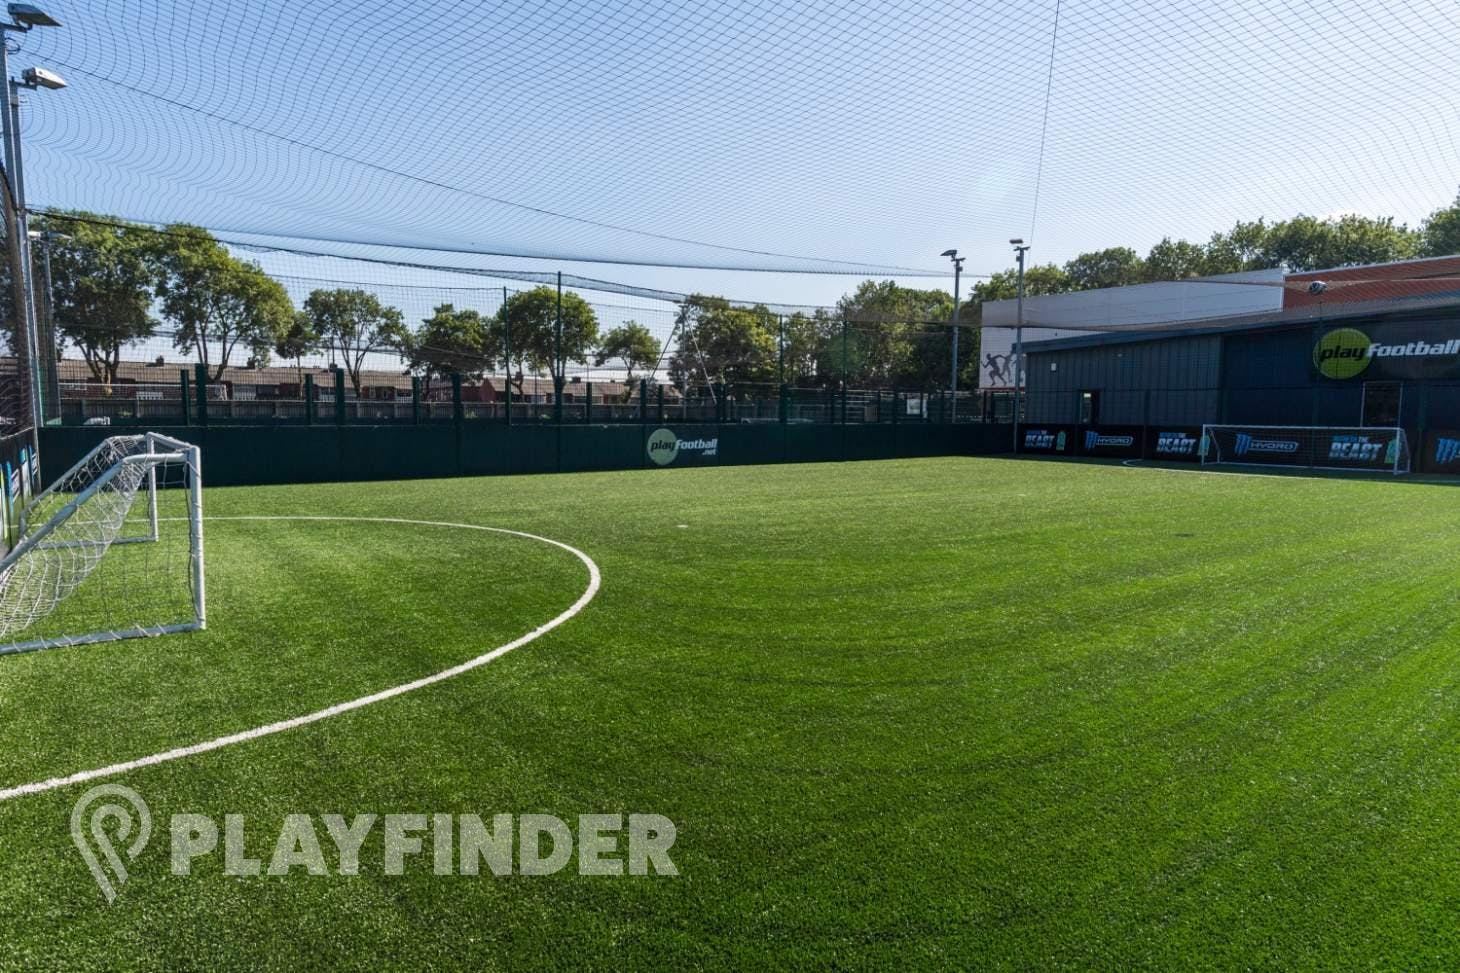 PlayFootball Bury 5 a side | 3G Astroturf football pitch